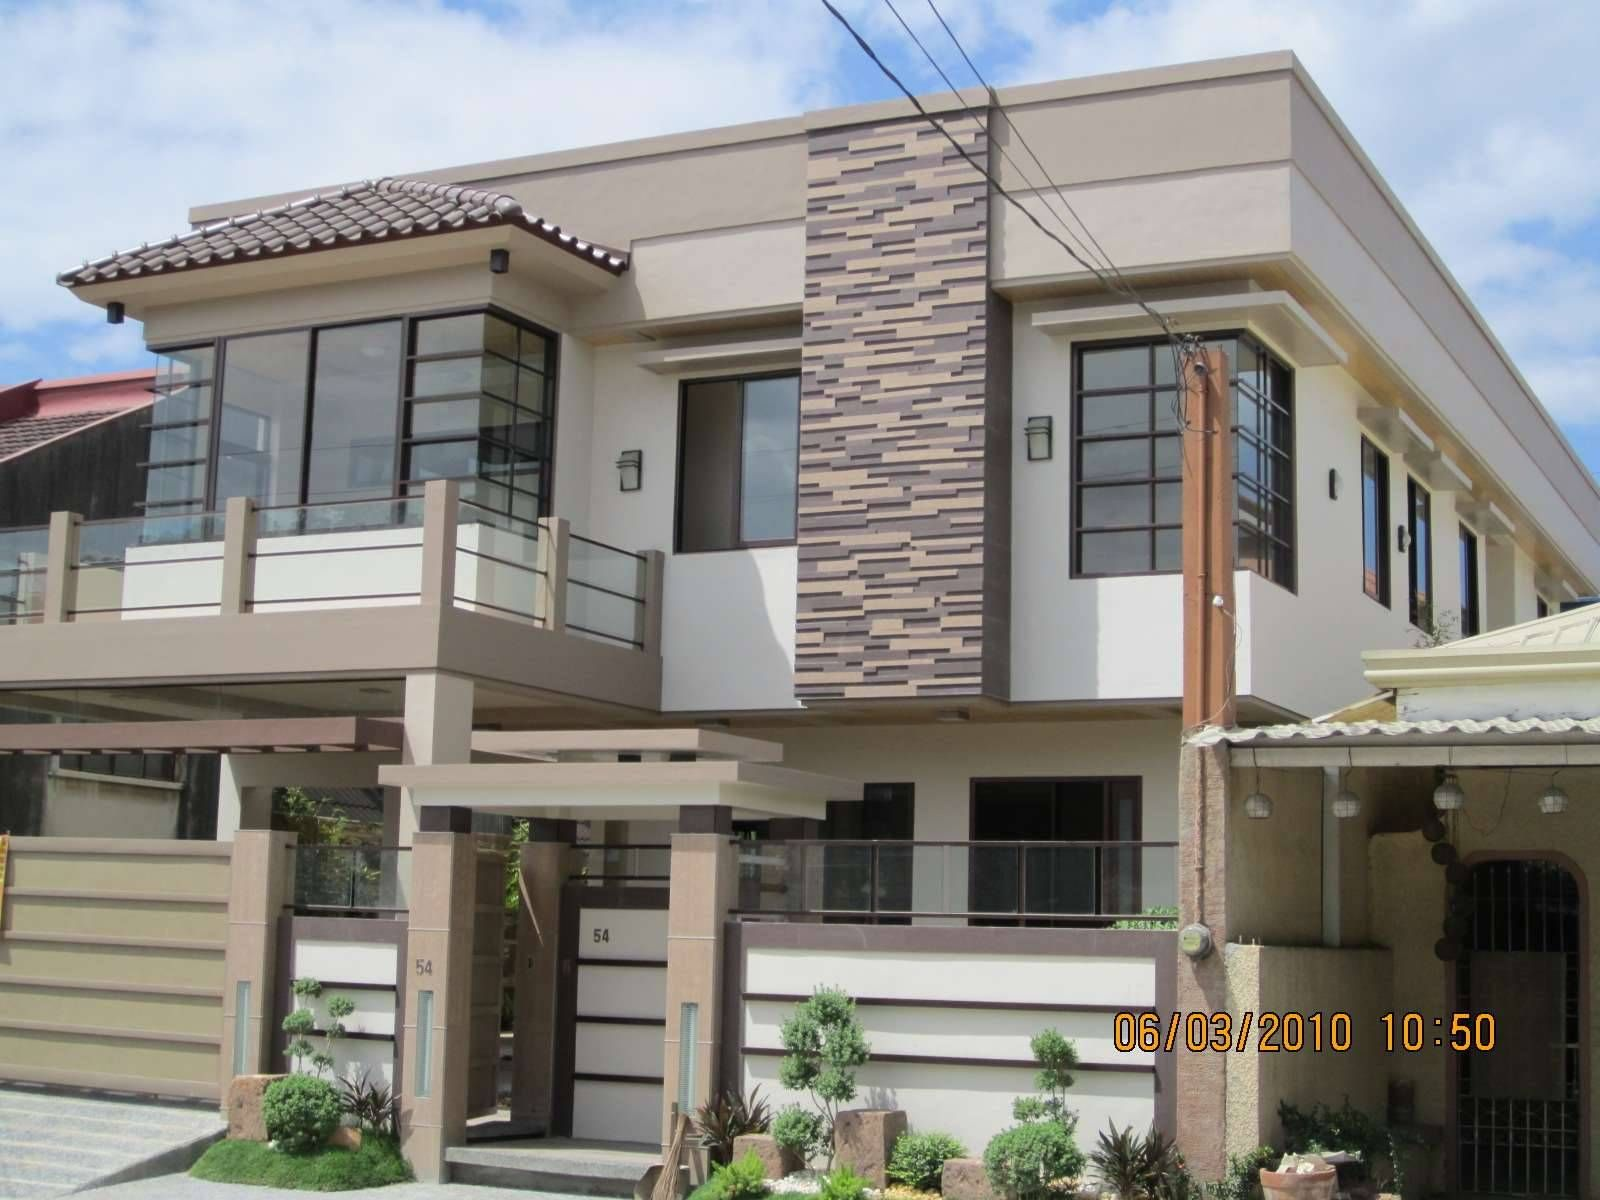 Philippines modern house exterior design dream house for Design the exterior of a house online